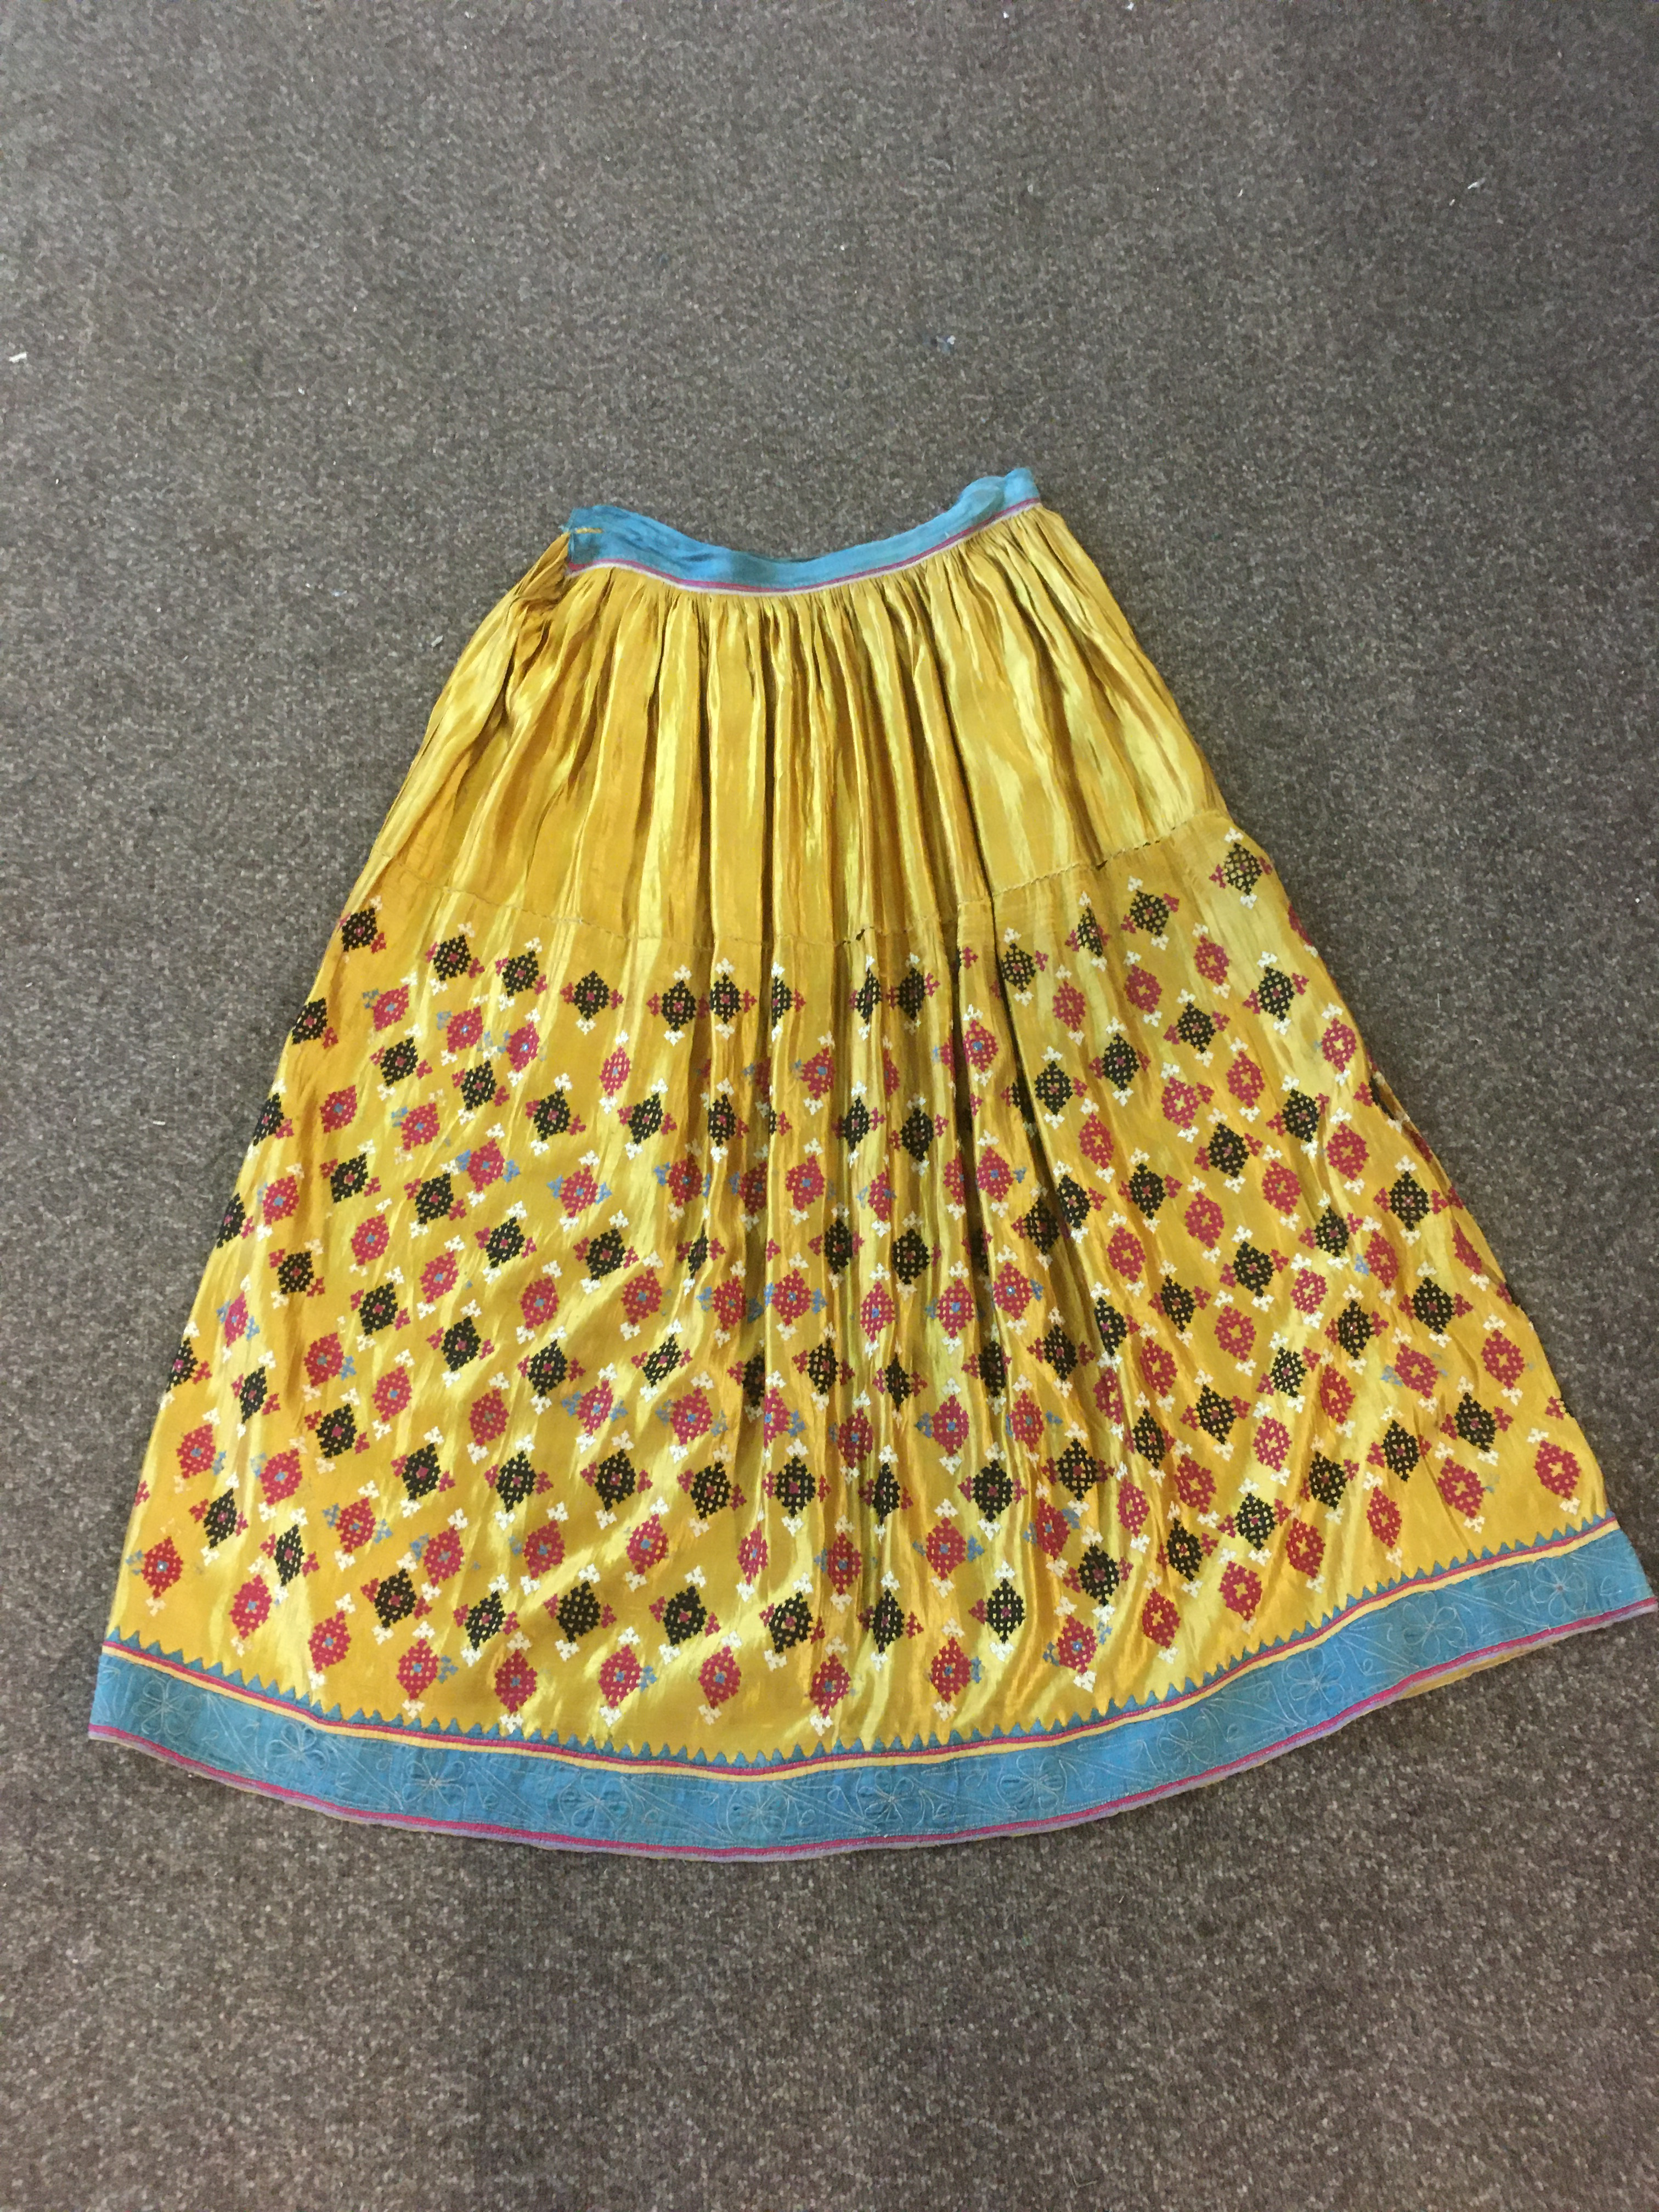 ANTIQUE INDIAN SKIRT a full length gathered skirt made from 19thc gold coloured silk, embroidered - Image 5 of 5